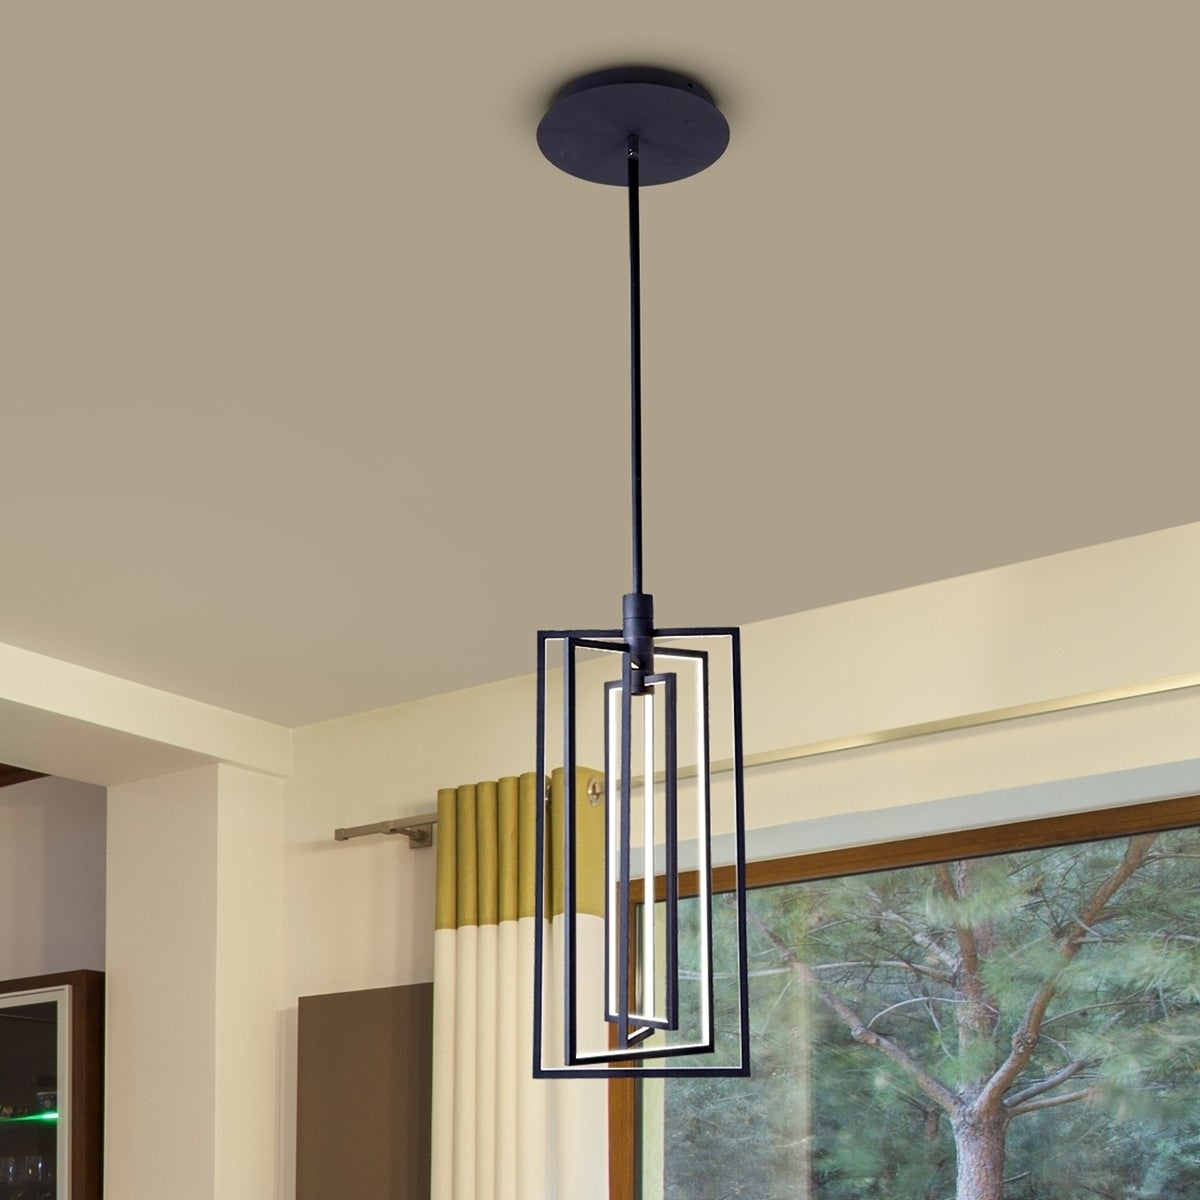 Shop vonn lighting vrp29204bl radium 12 inch integrated led shop vonn lighting vrp29204bl radium 12 inch integrated led rectangular rotating pendant light fixture on sale free shipping today overstock aloadofball Choice Image